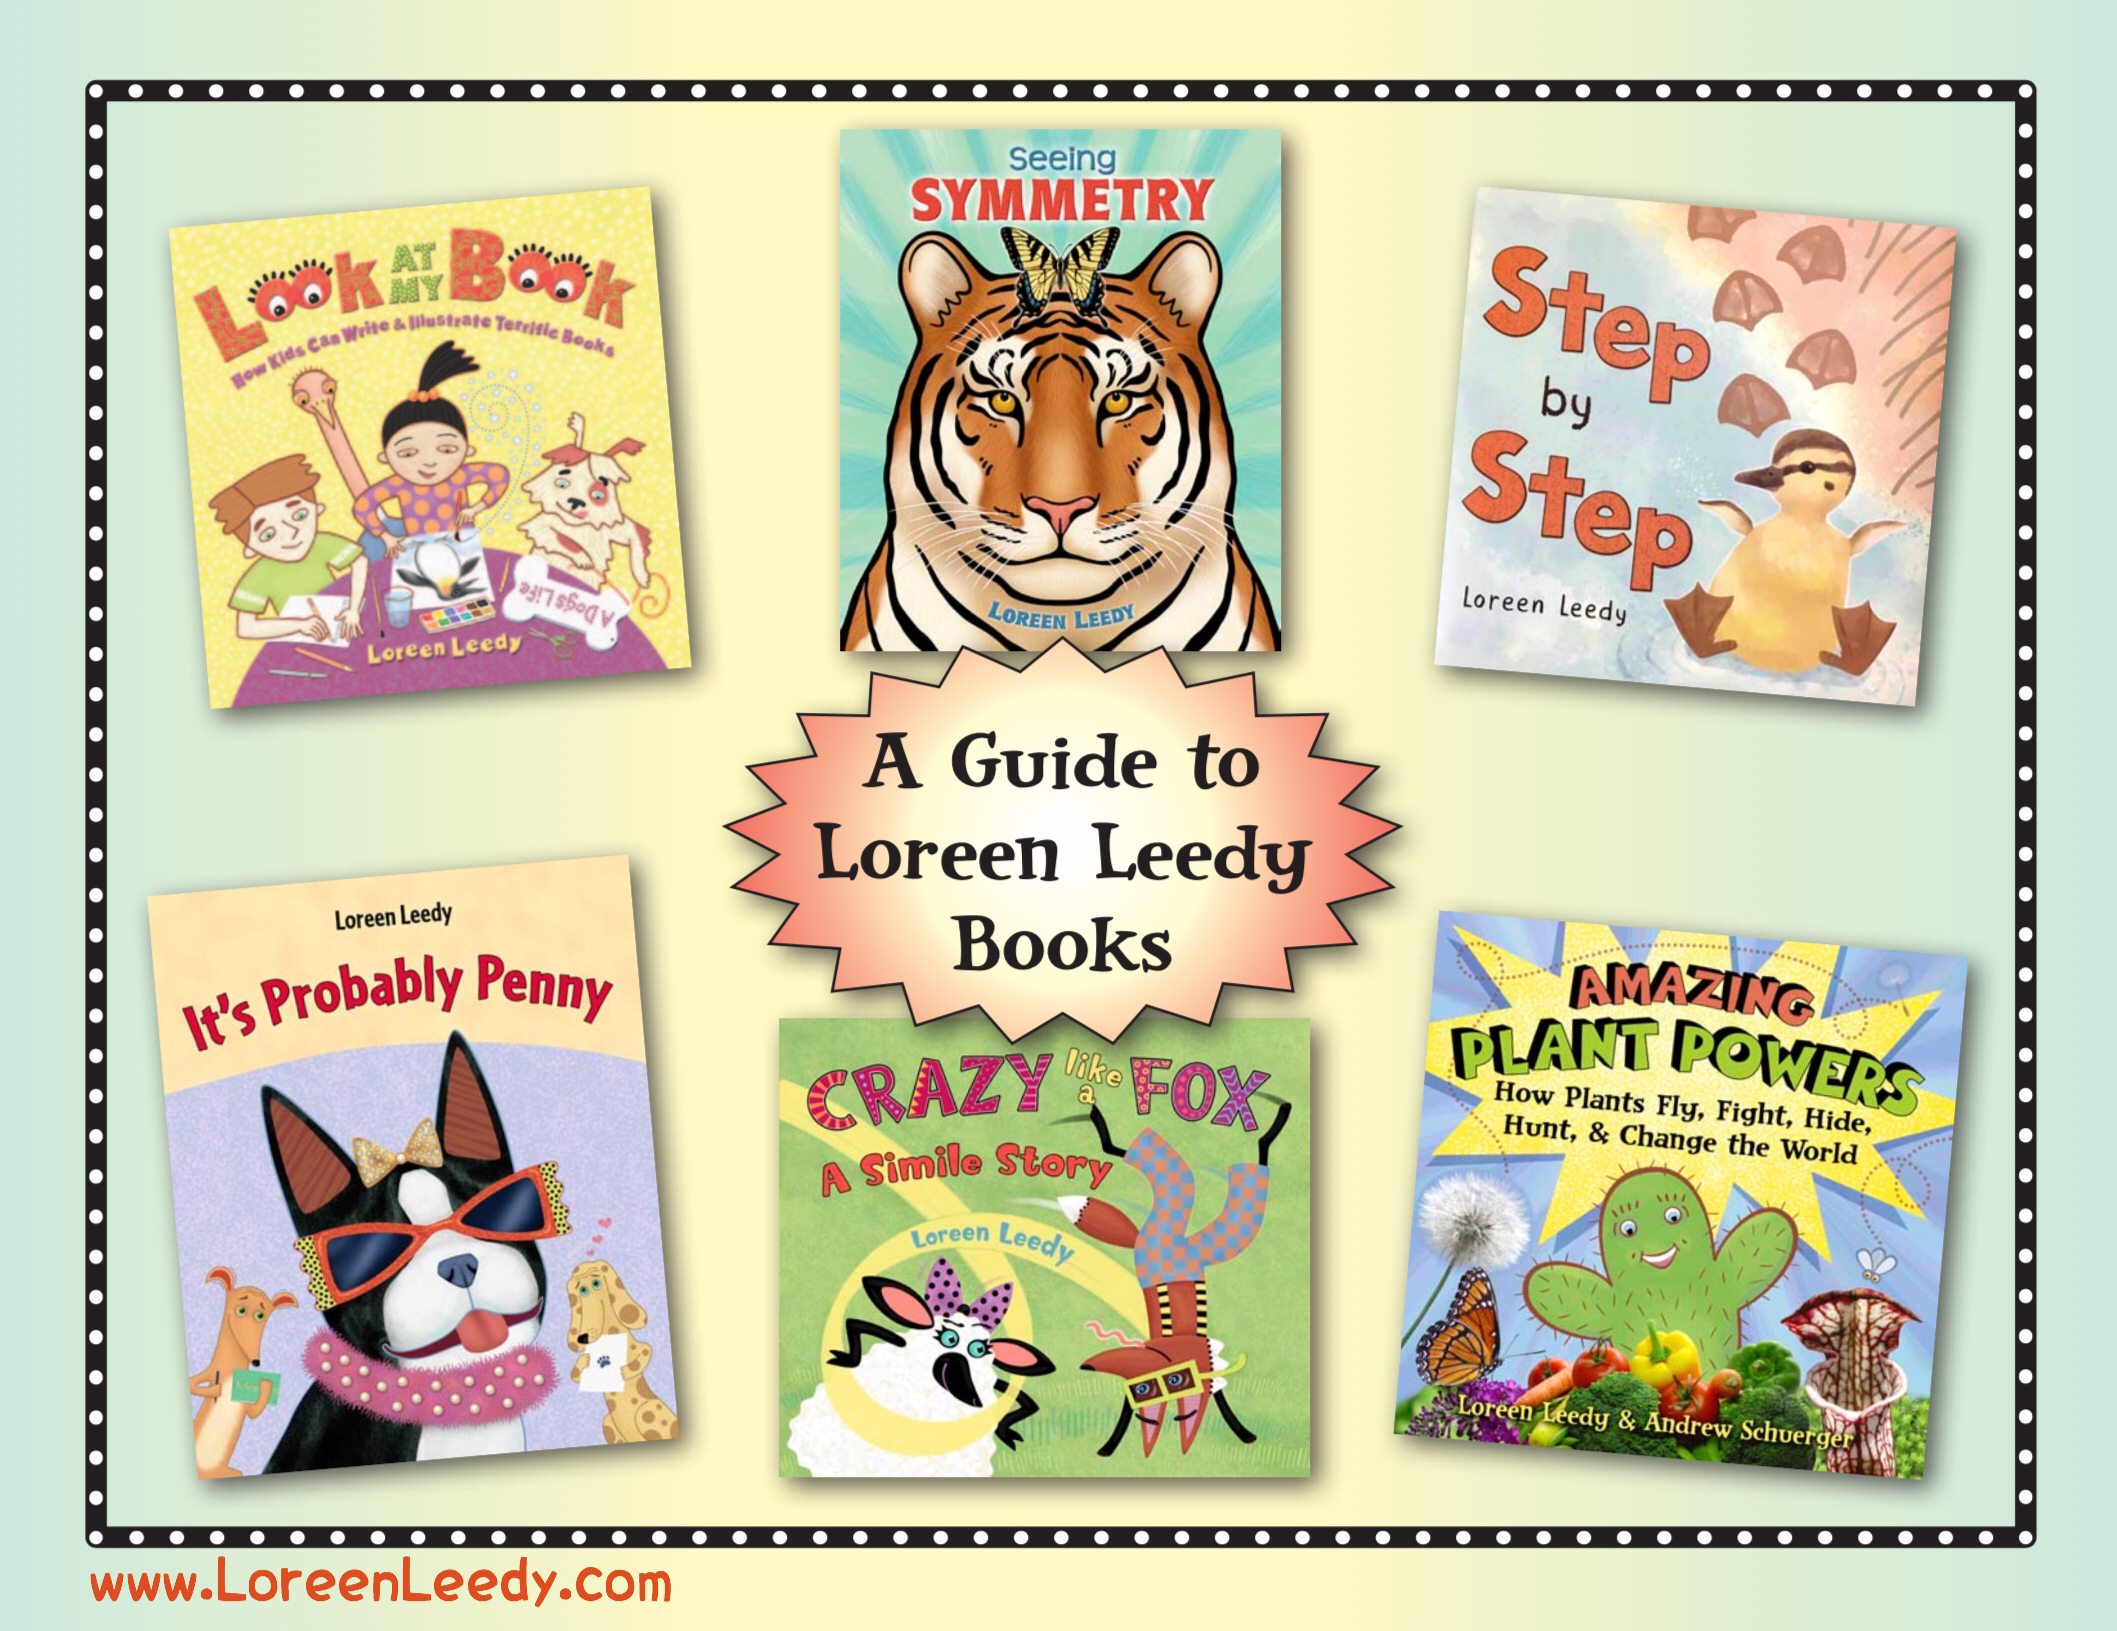 The cover image from the   Guide to Loreen Leedy Books  , a free downloadable PDF